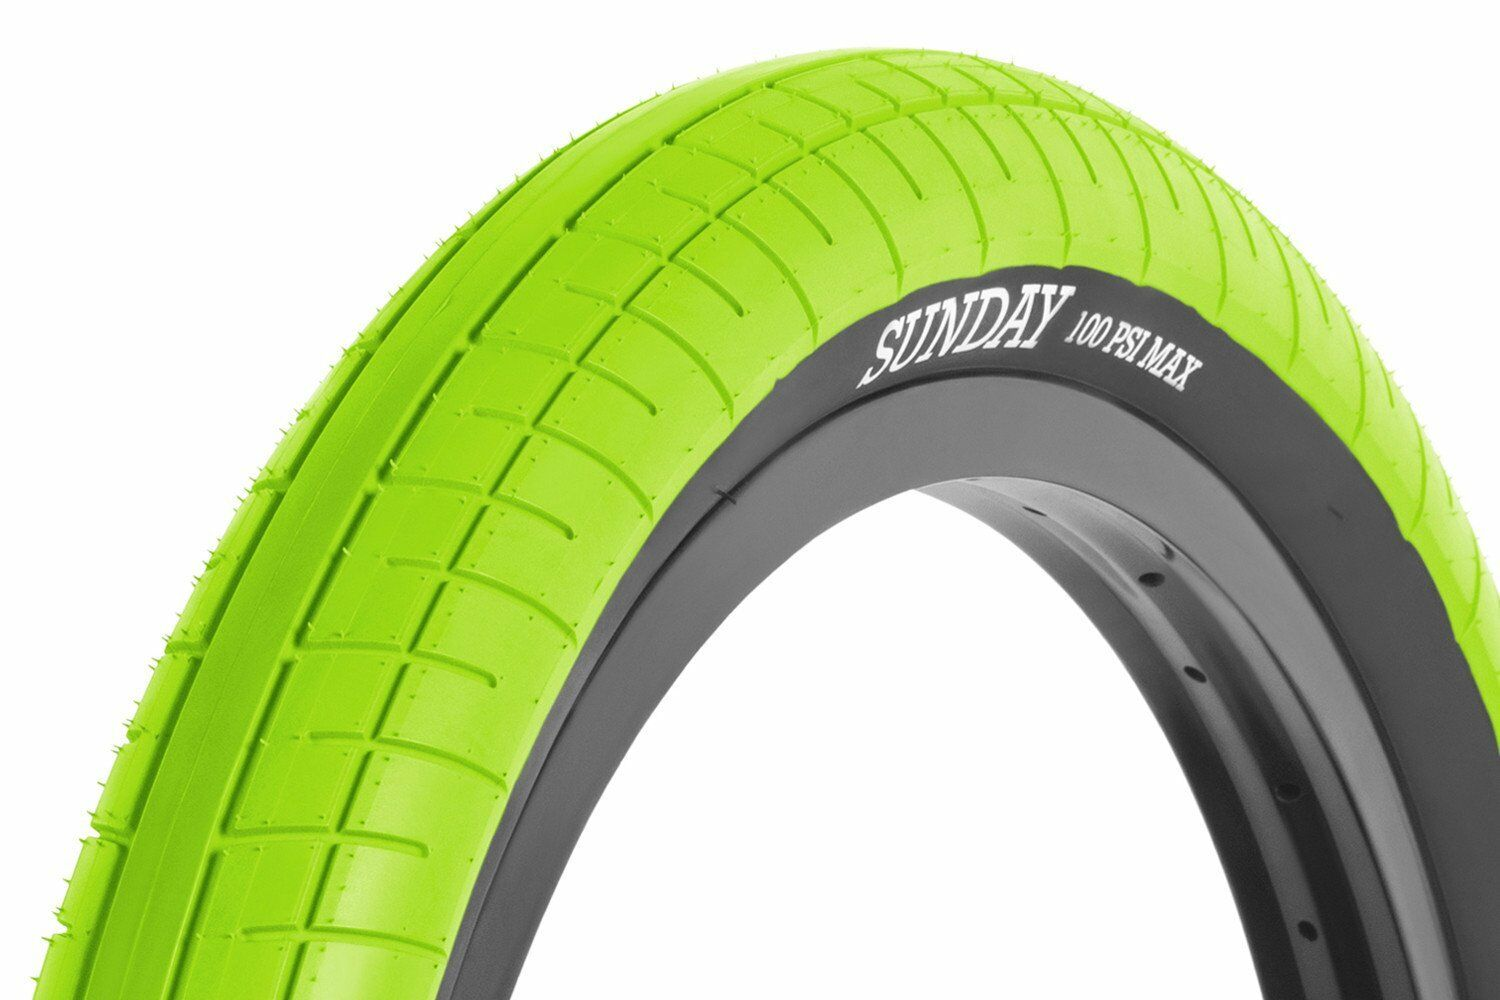 20x2.40 Sunday BMX Street Sweeper Tire - 100psi - Green w/ Black Sidewall